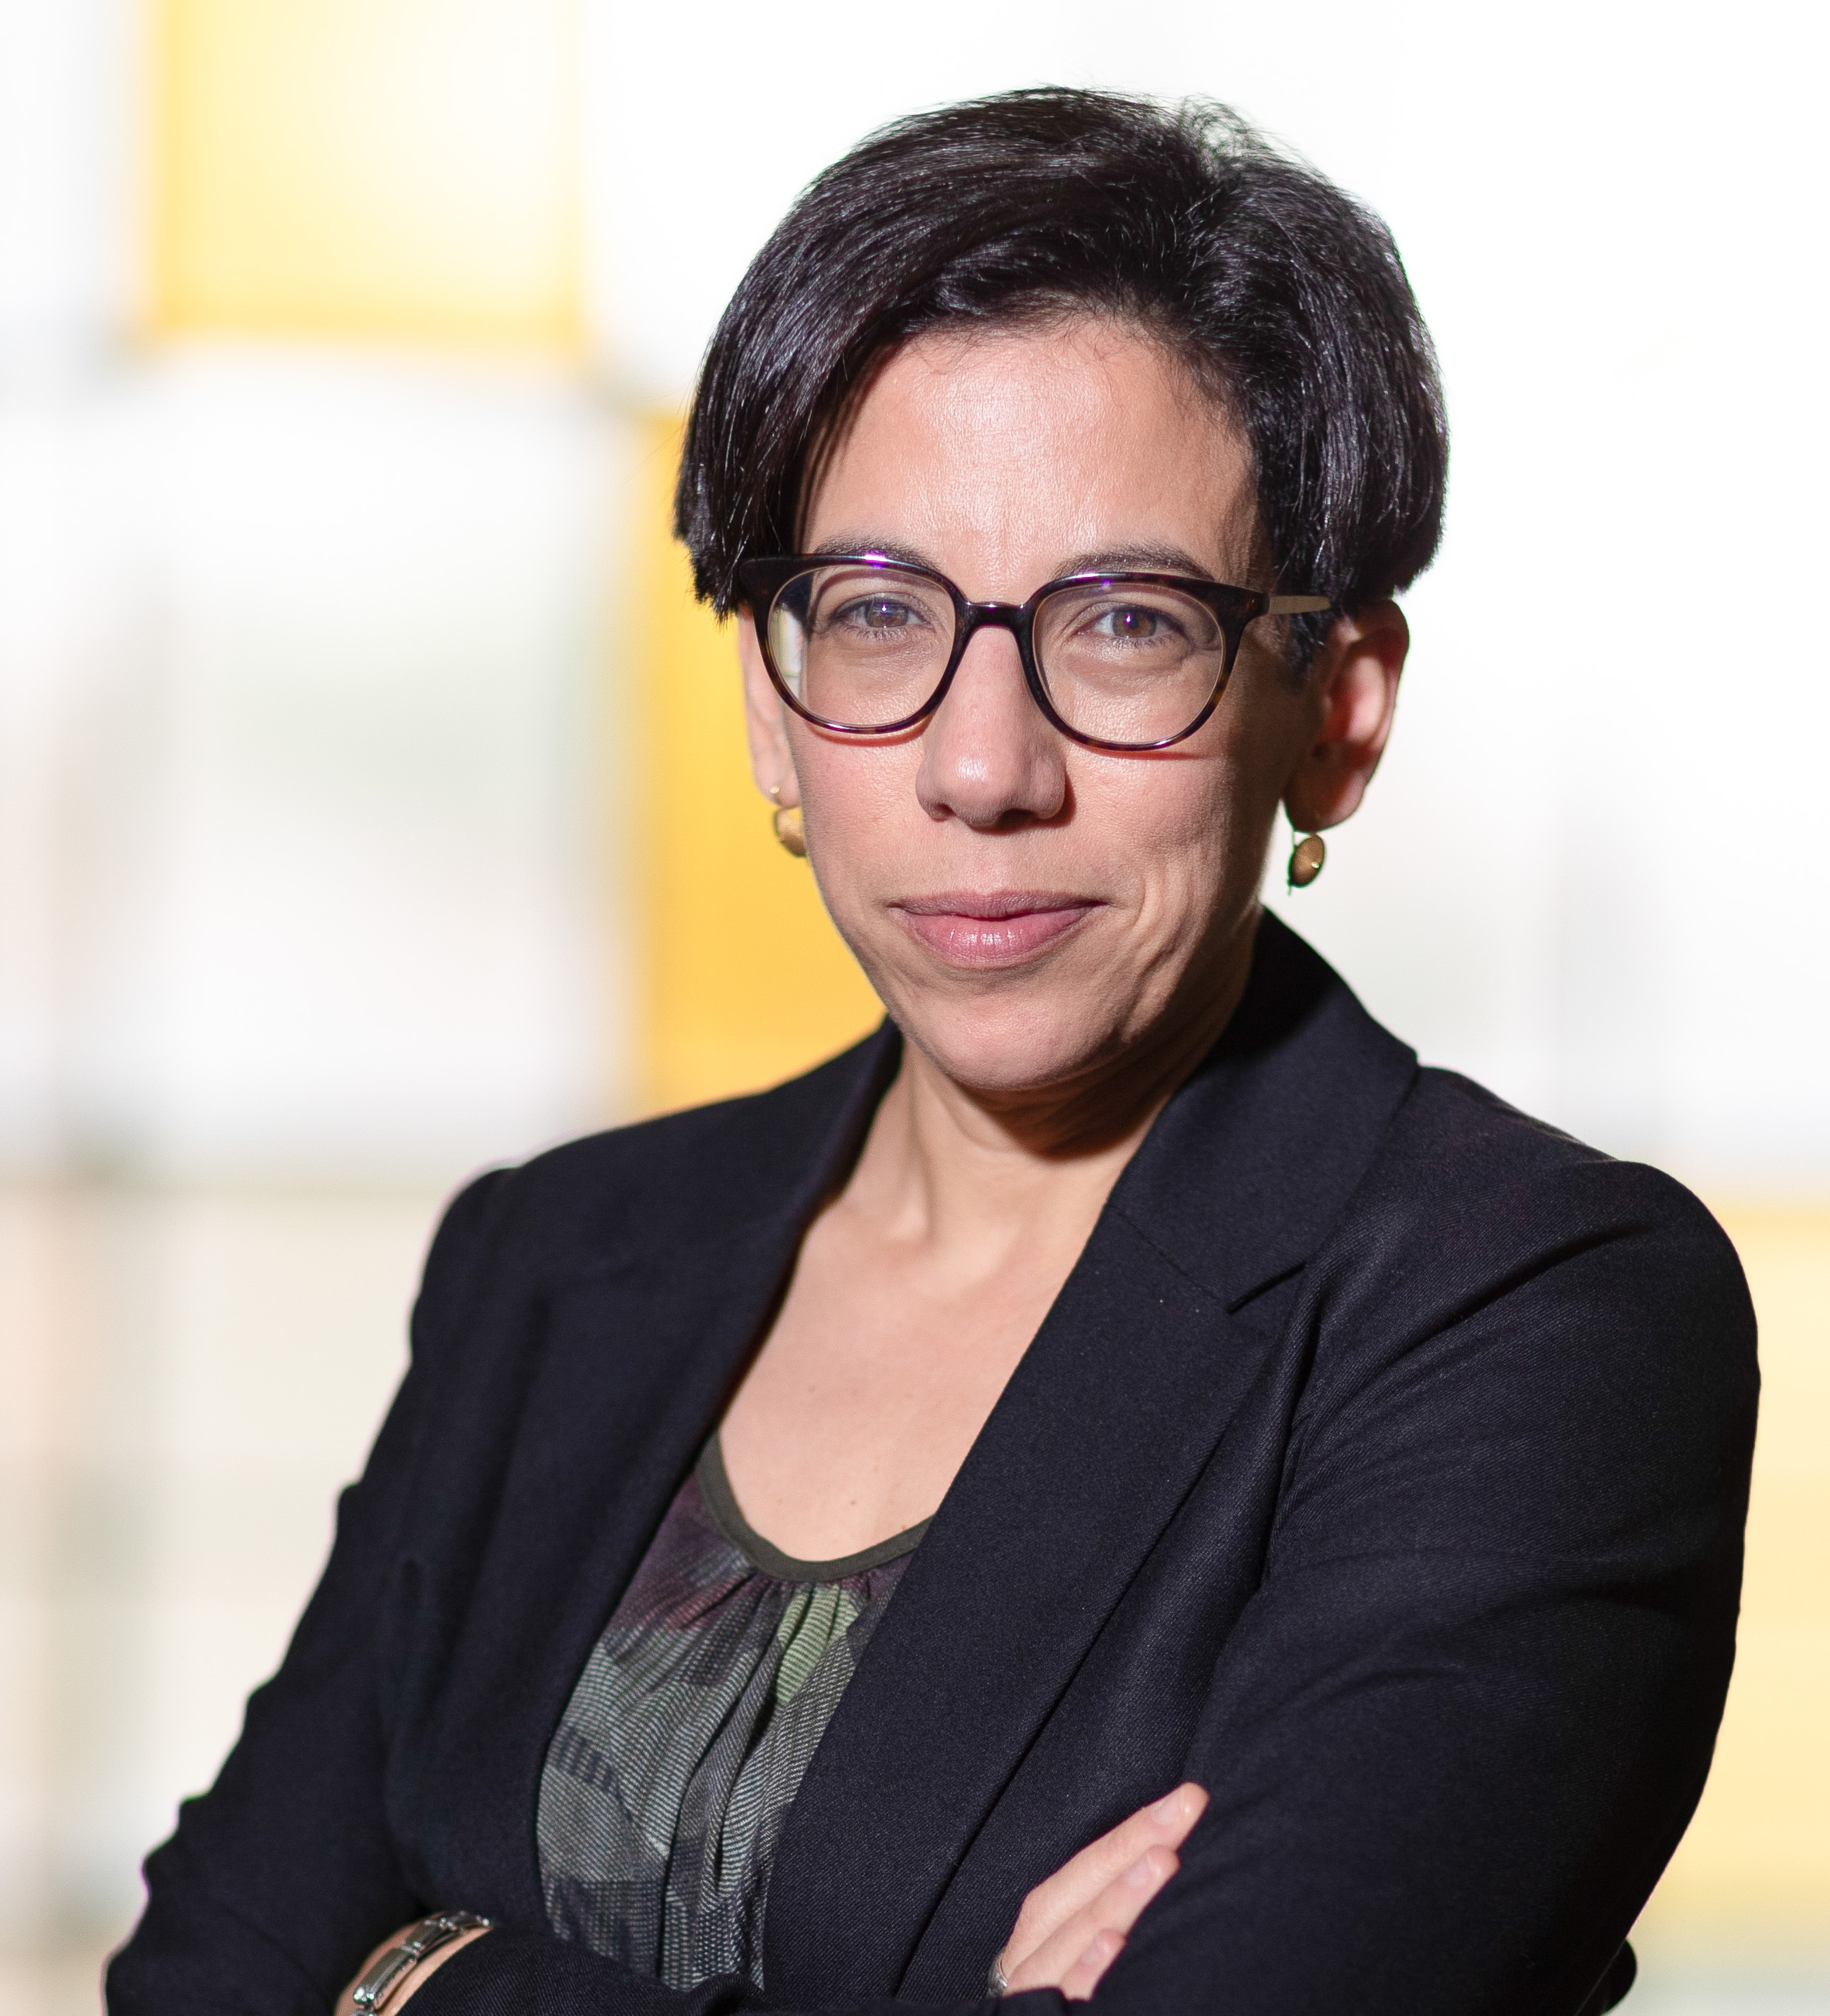 Associate Professor Chiara Neto